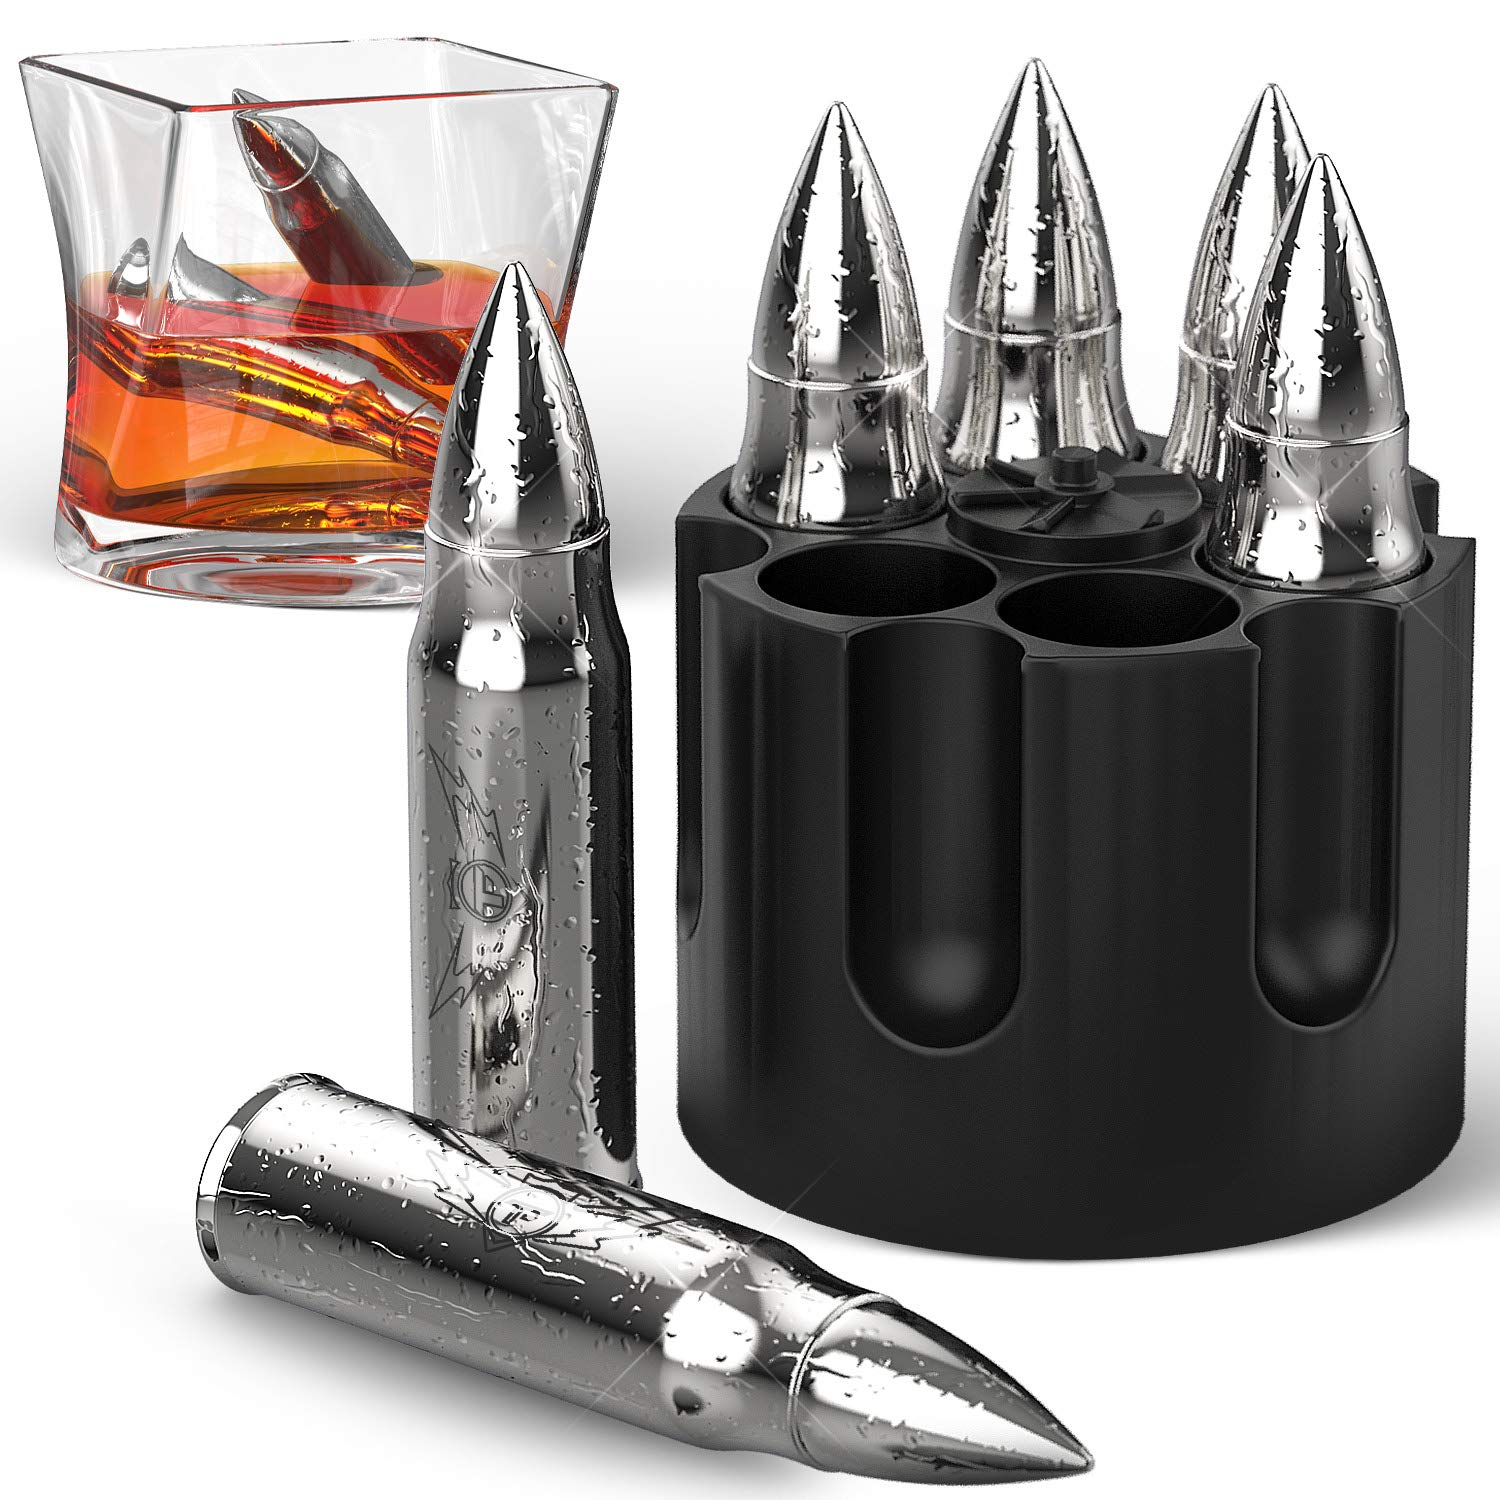 Bullet Shaped Metal Whiskey Stones - 6-Pack Stainless Steel Whiskey Rocks | Metal Ice Cubes to Chill Bourbon, Scotch in Your Whisky Glass - Cool Gifts for Men, Father's Day, Christmas Stocking Stuffer by TF TAKEFLIGHT (Image #1)